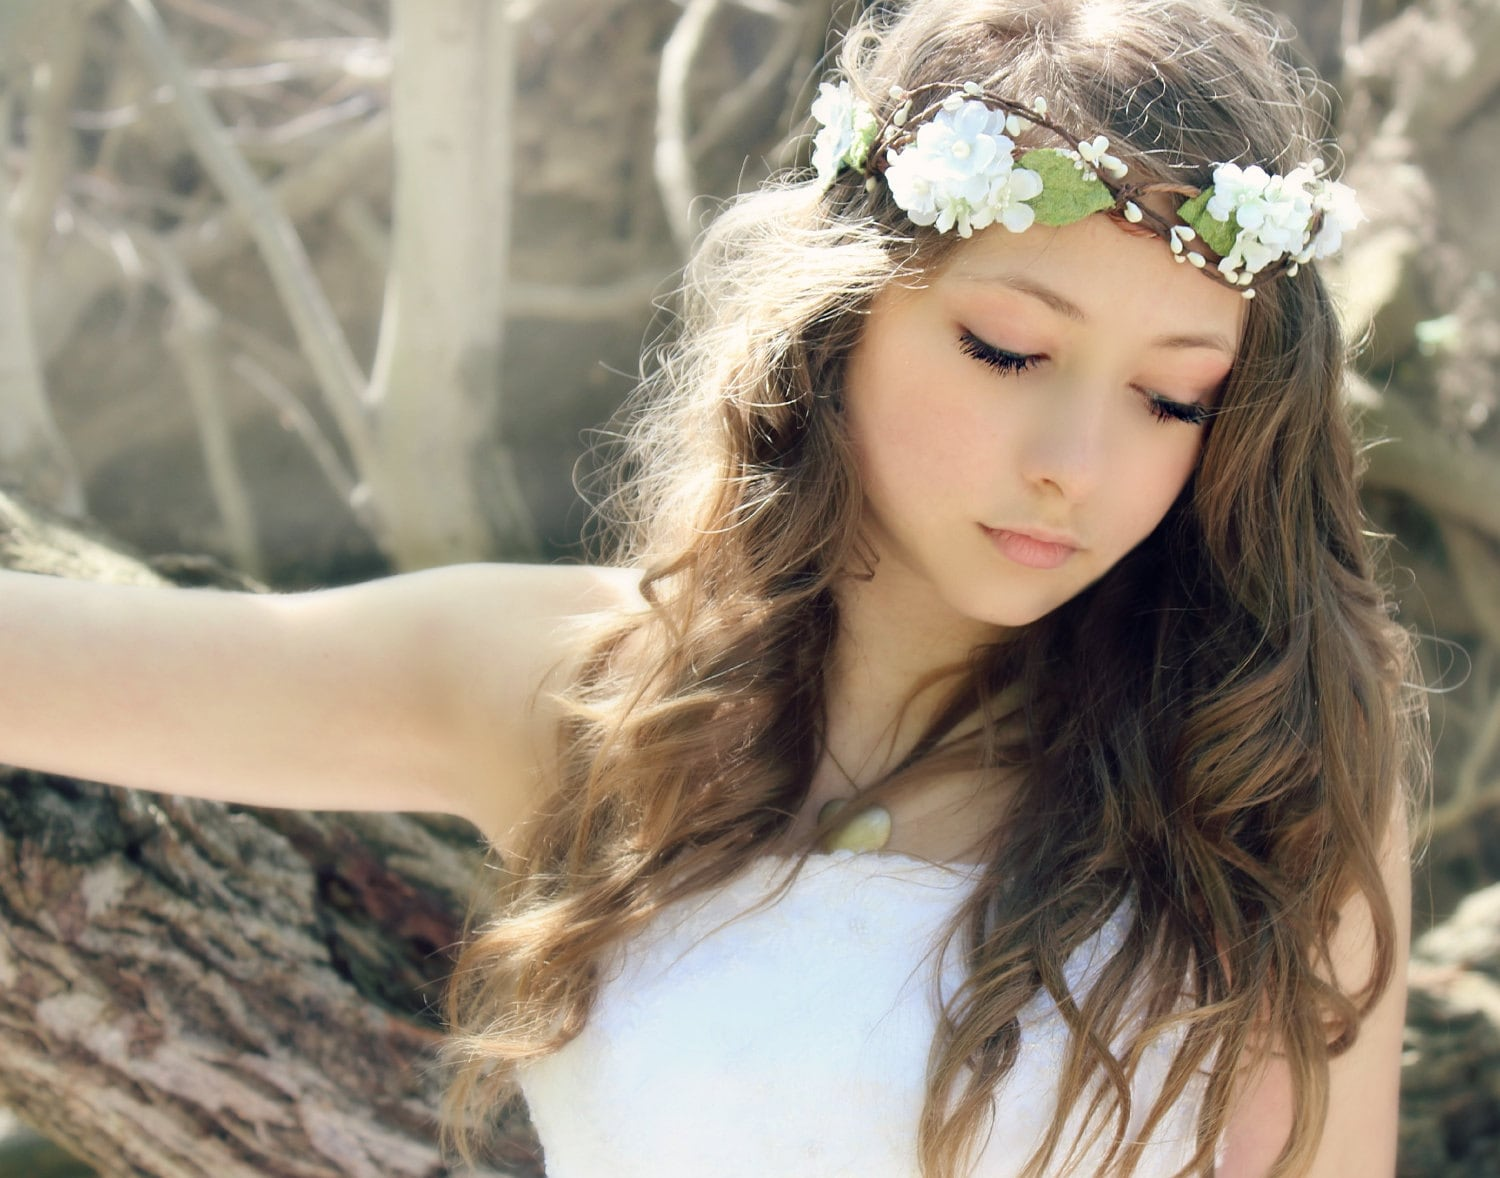 Flower Crown Millinery Leafs Woodland Wedding Hair by deLoop